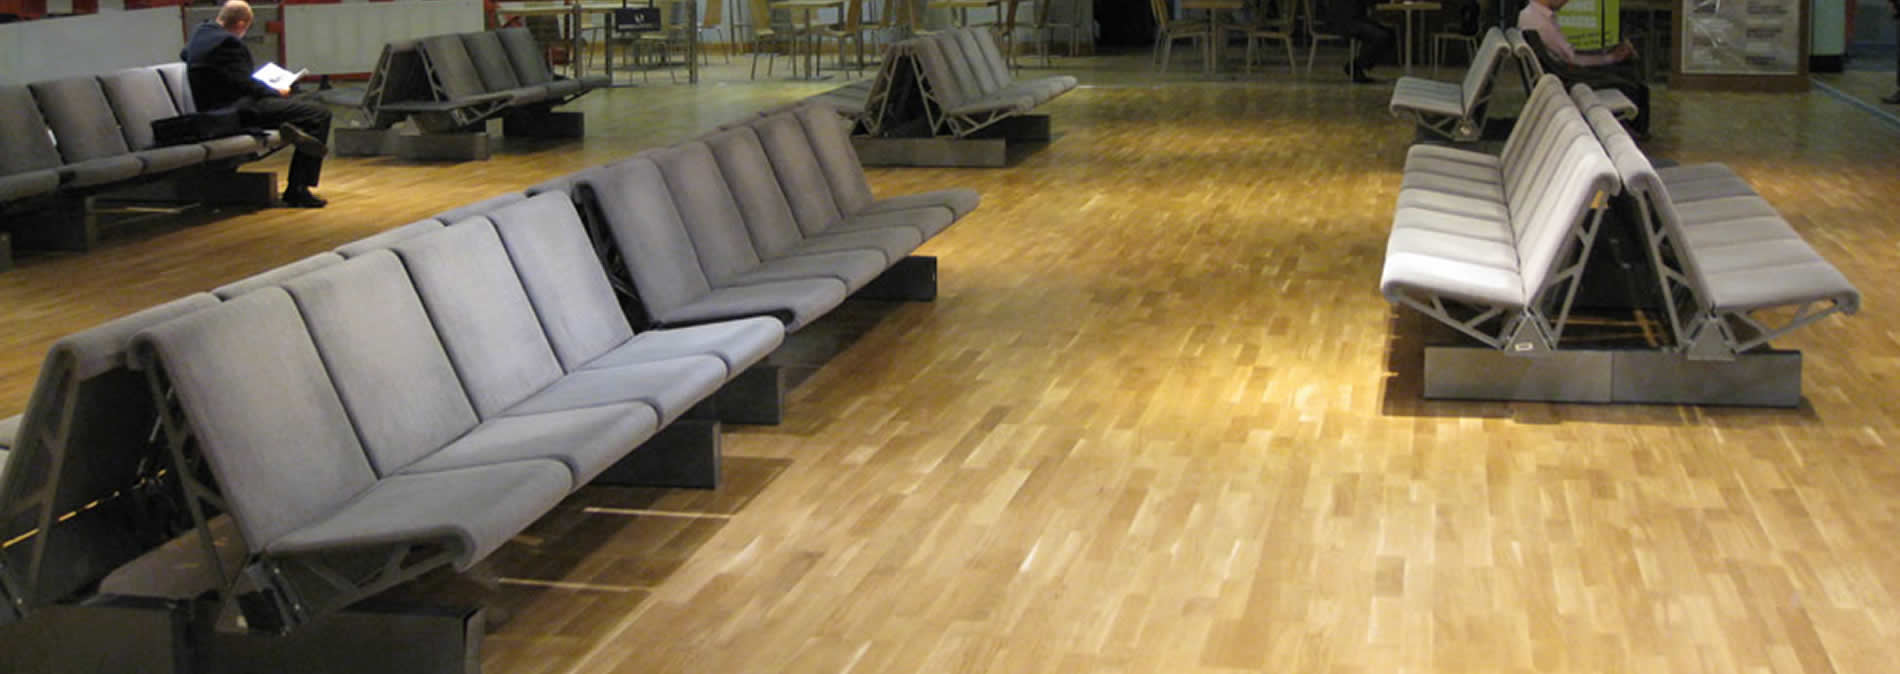 Wooden flooring contractors nationwide flooring contractors for Flooring contractors